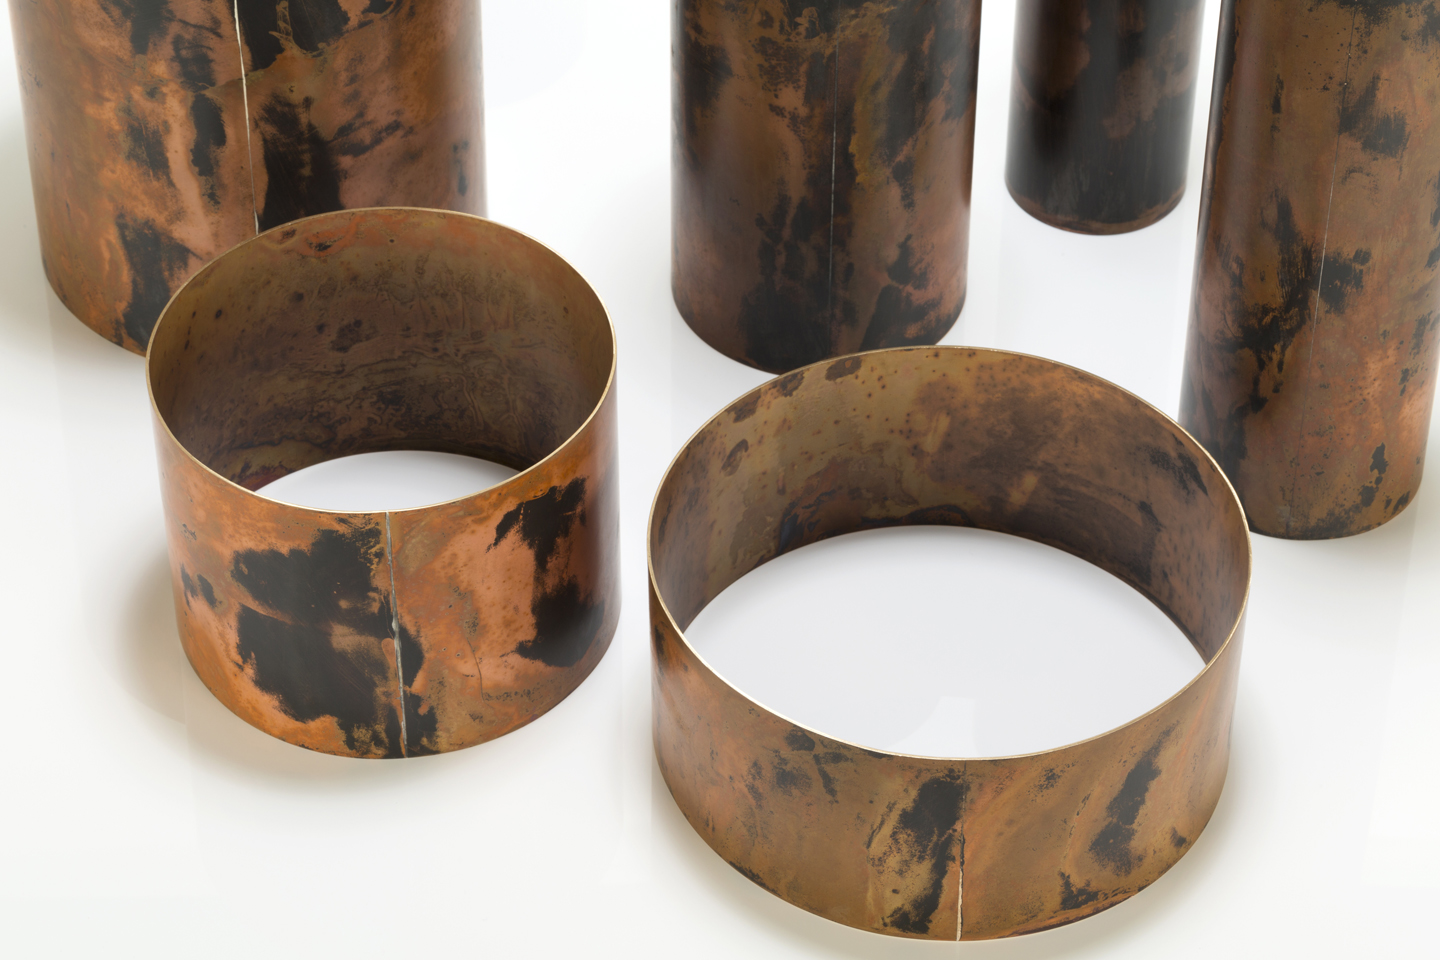 Juliette_Bigley_Cylinders_patinated_gilding_metal_2018_8.JPG